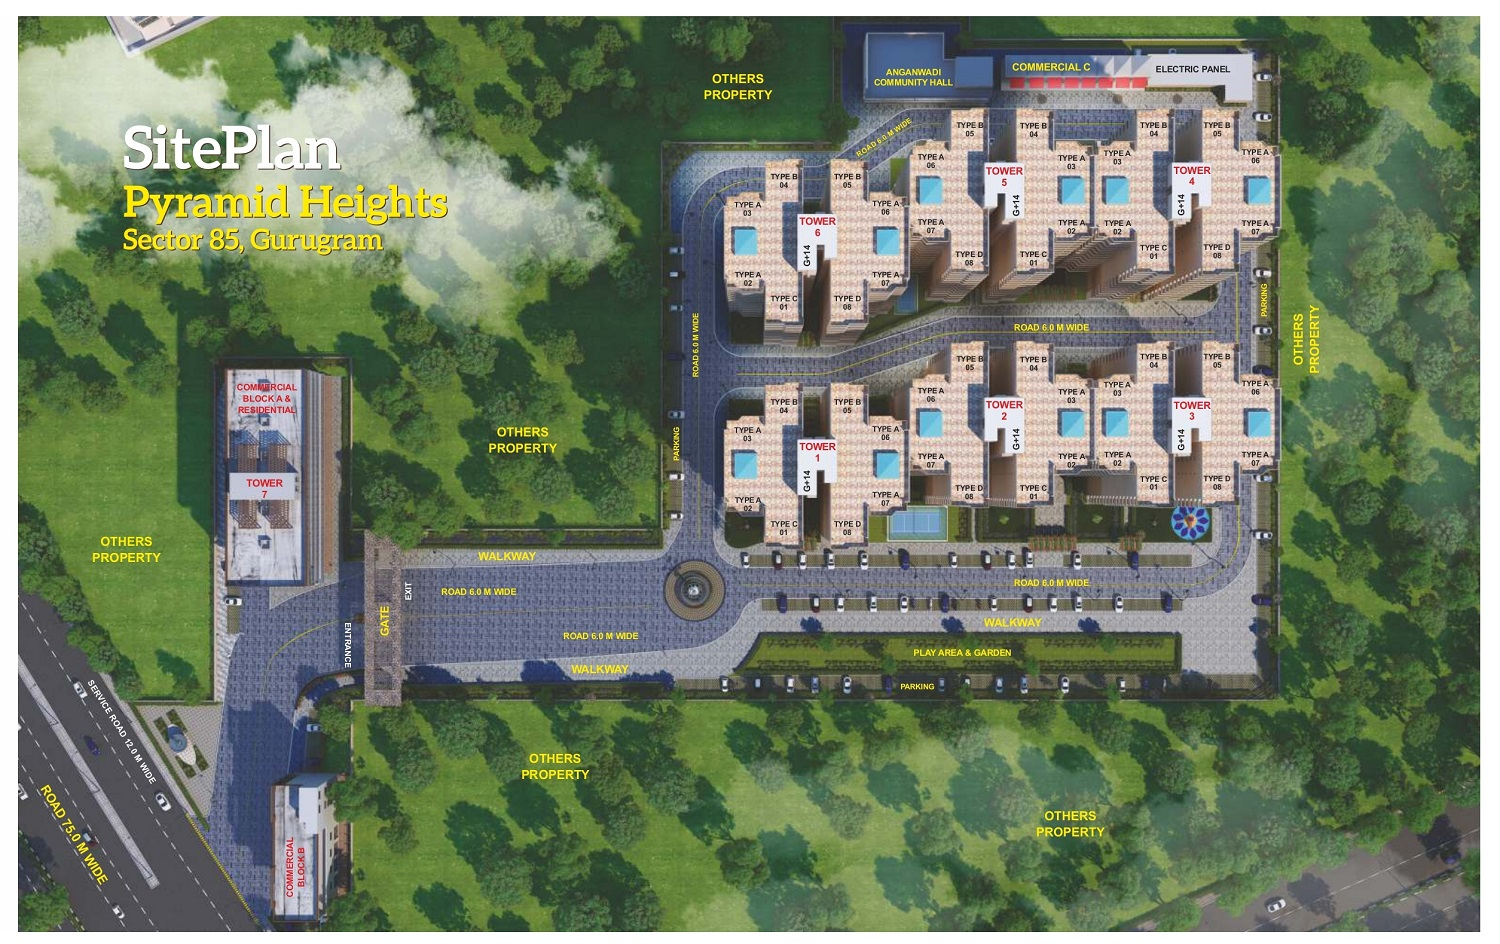 Pyramid Heights Sector 85 Site Plan